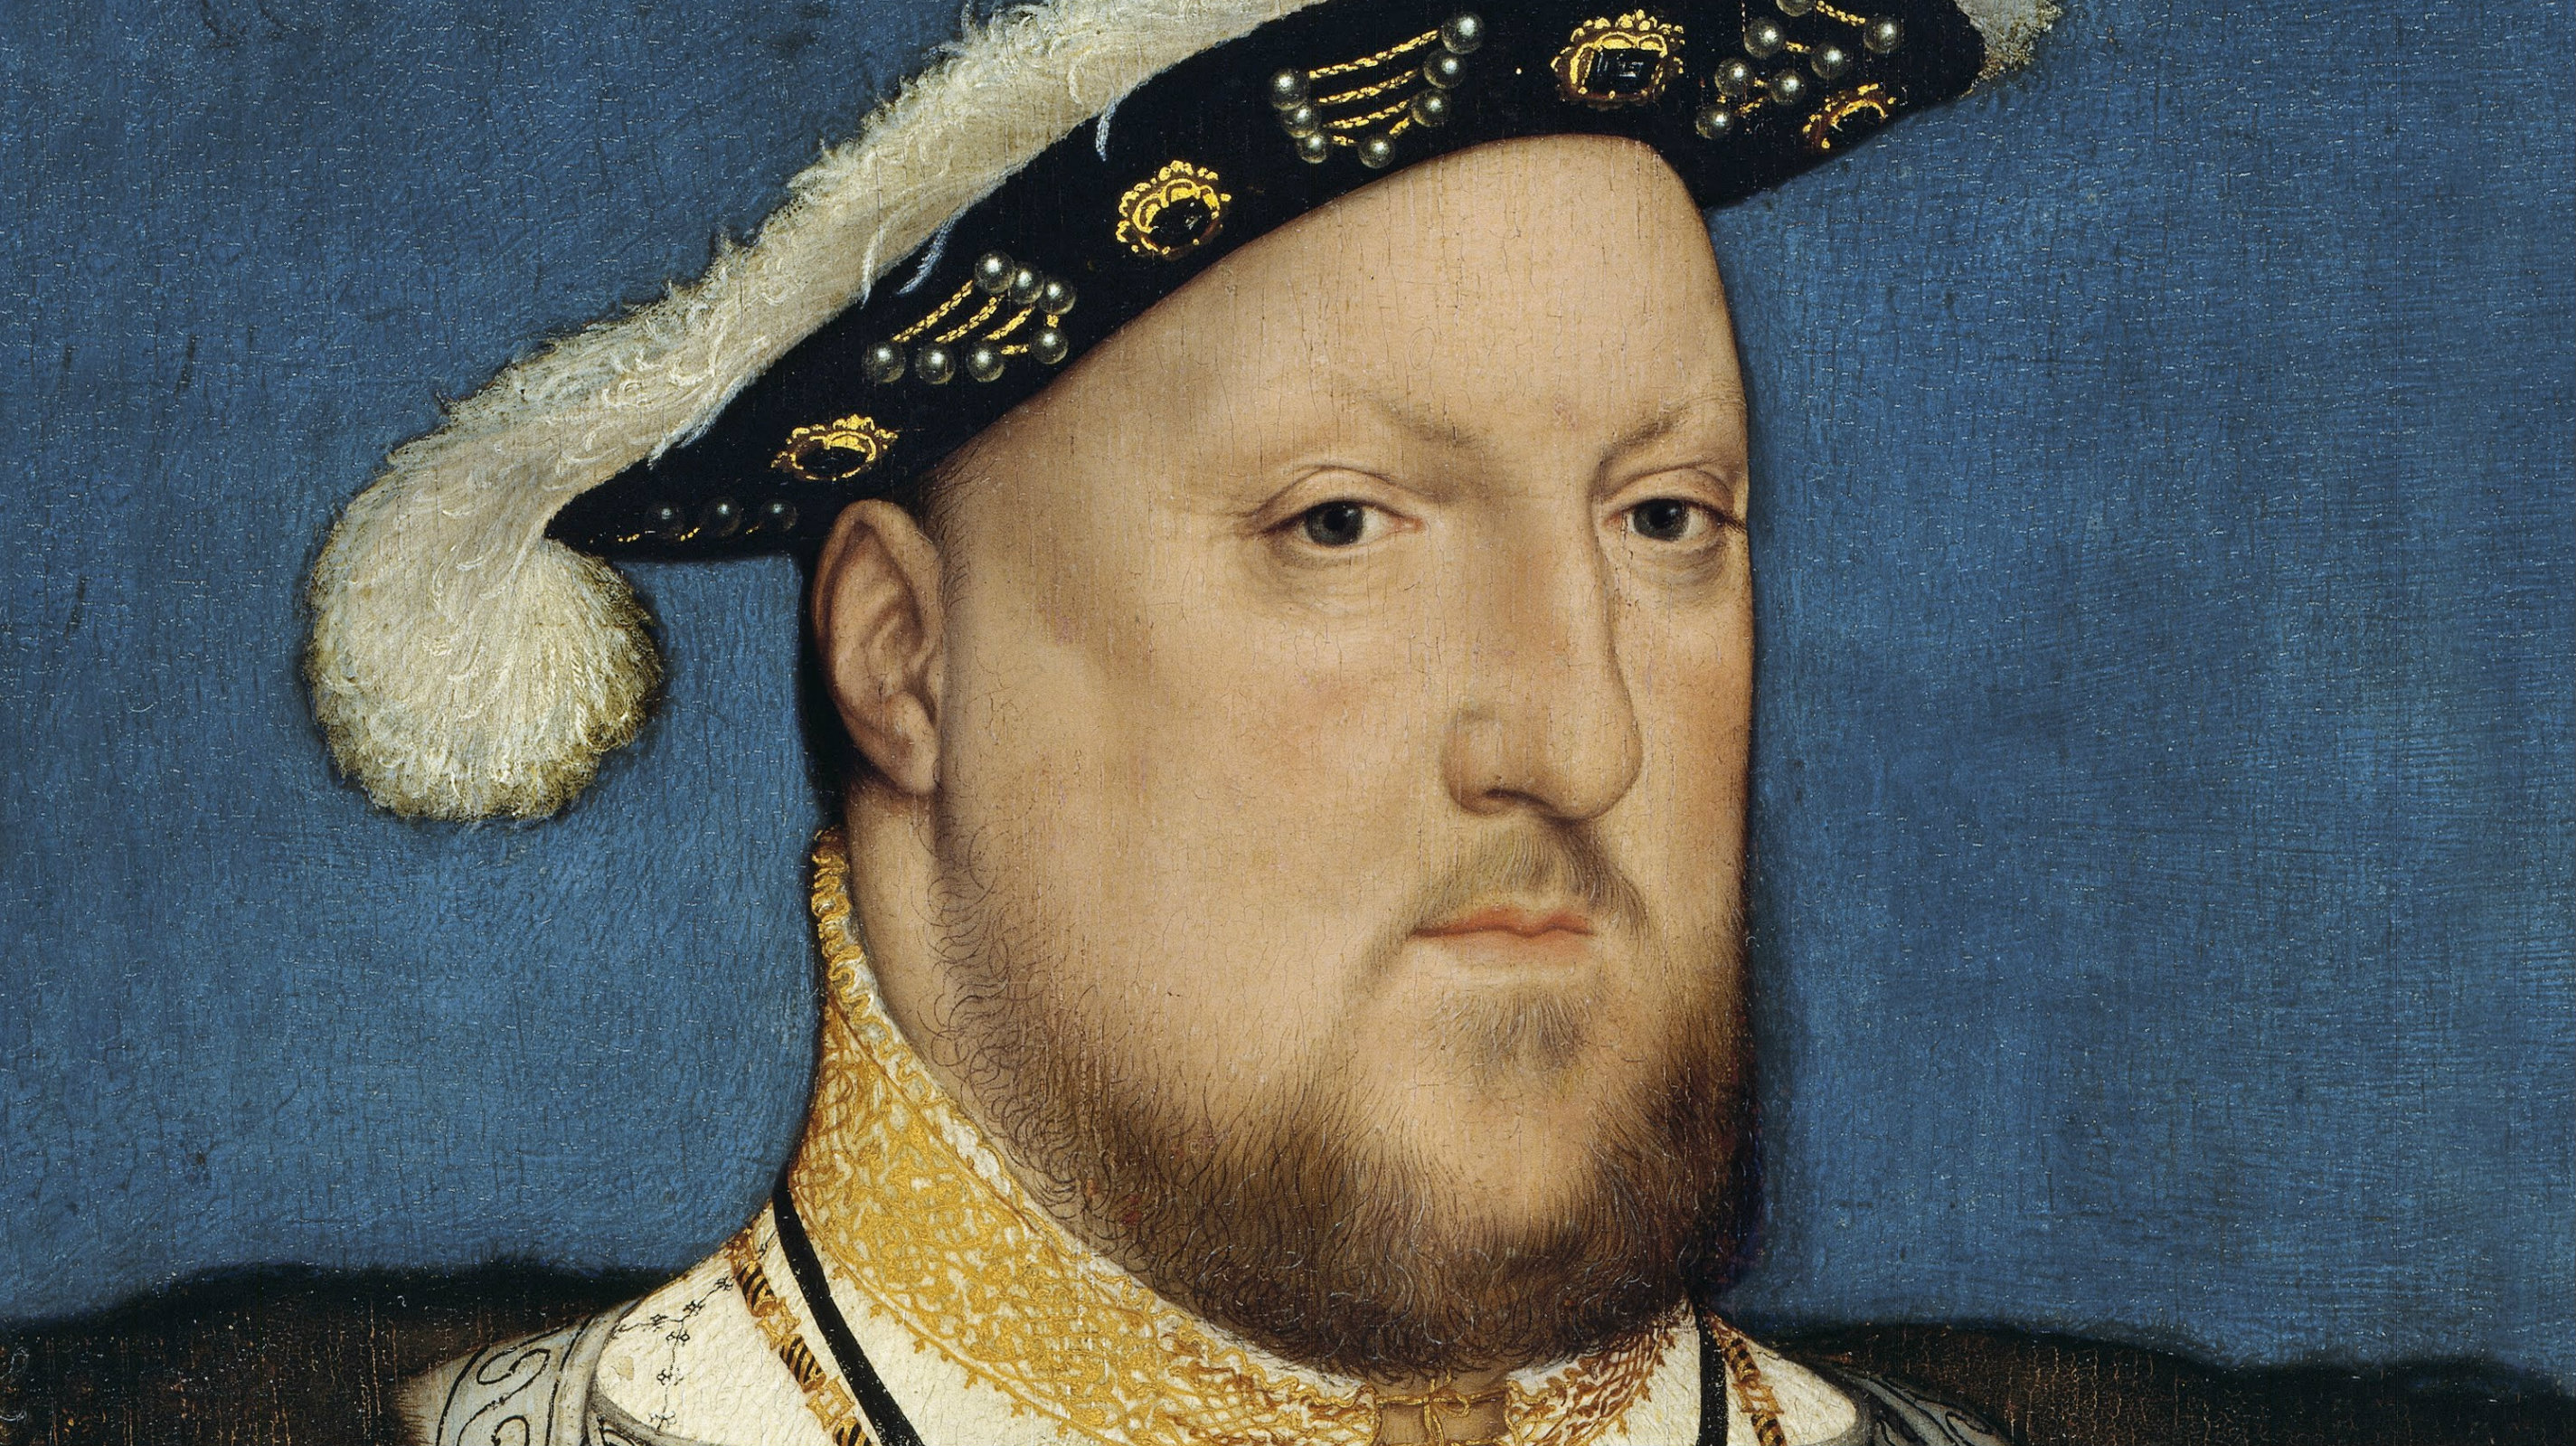 Portrait of Henry VIII of England by Hans Holbein, the Younger